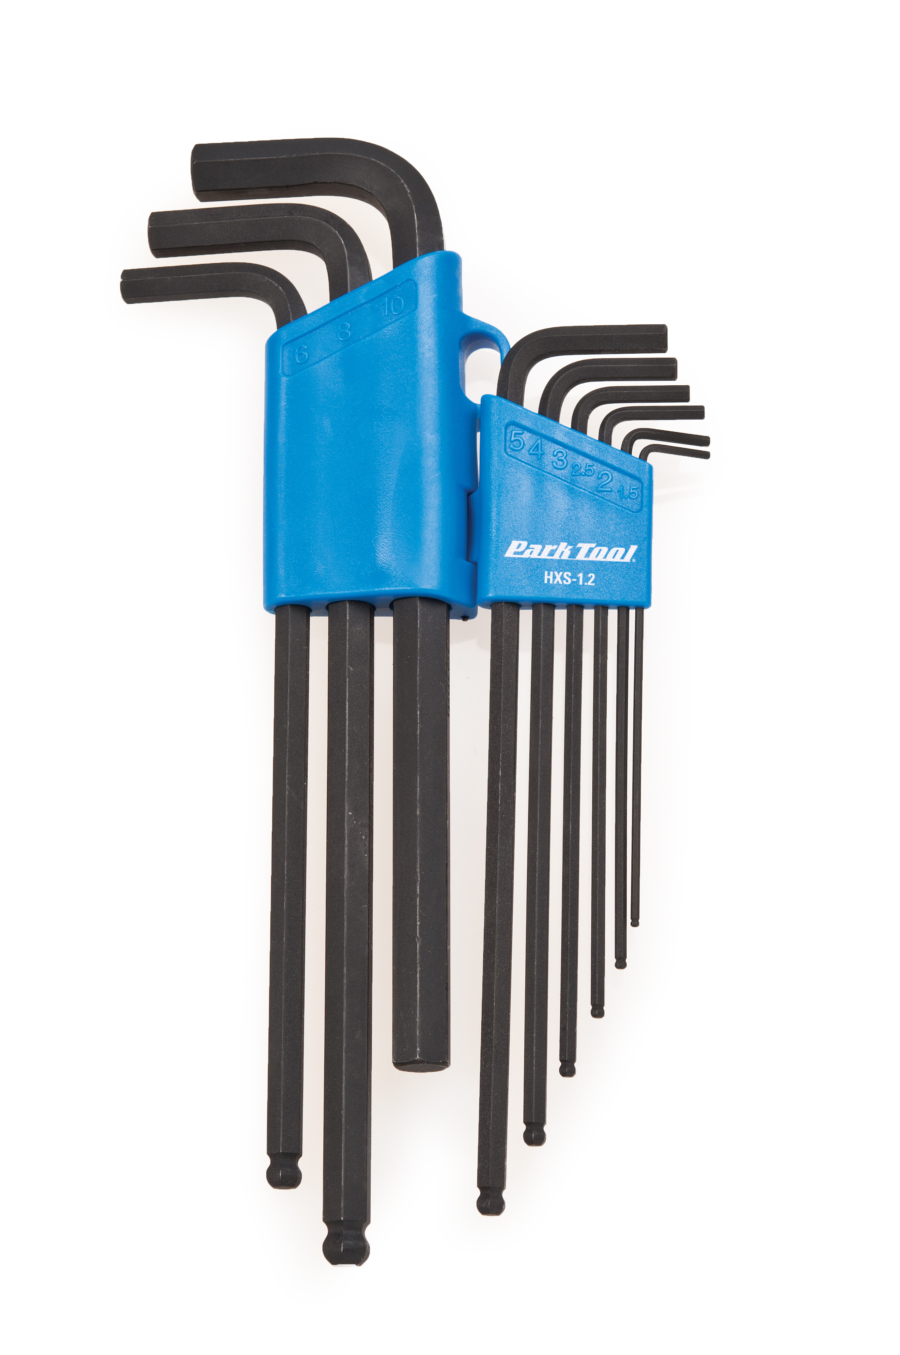 Park Tool HXS-1.2 Professional L-Shaped Hex Wrench Set, enlarged